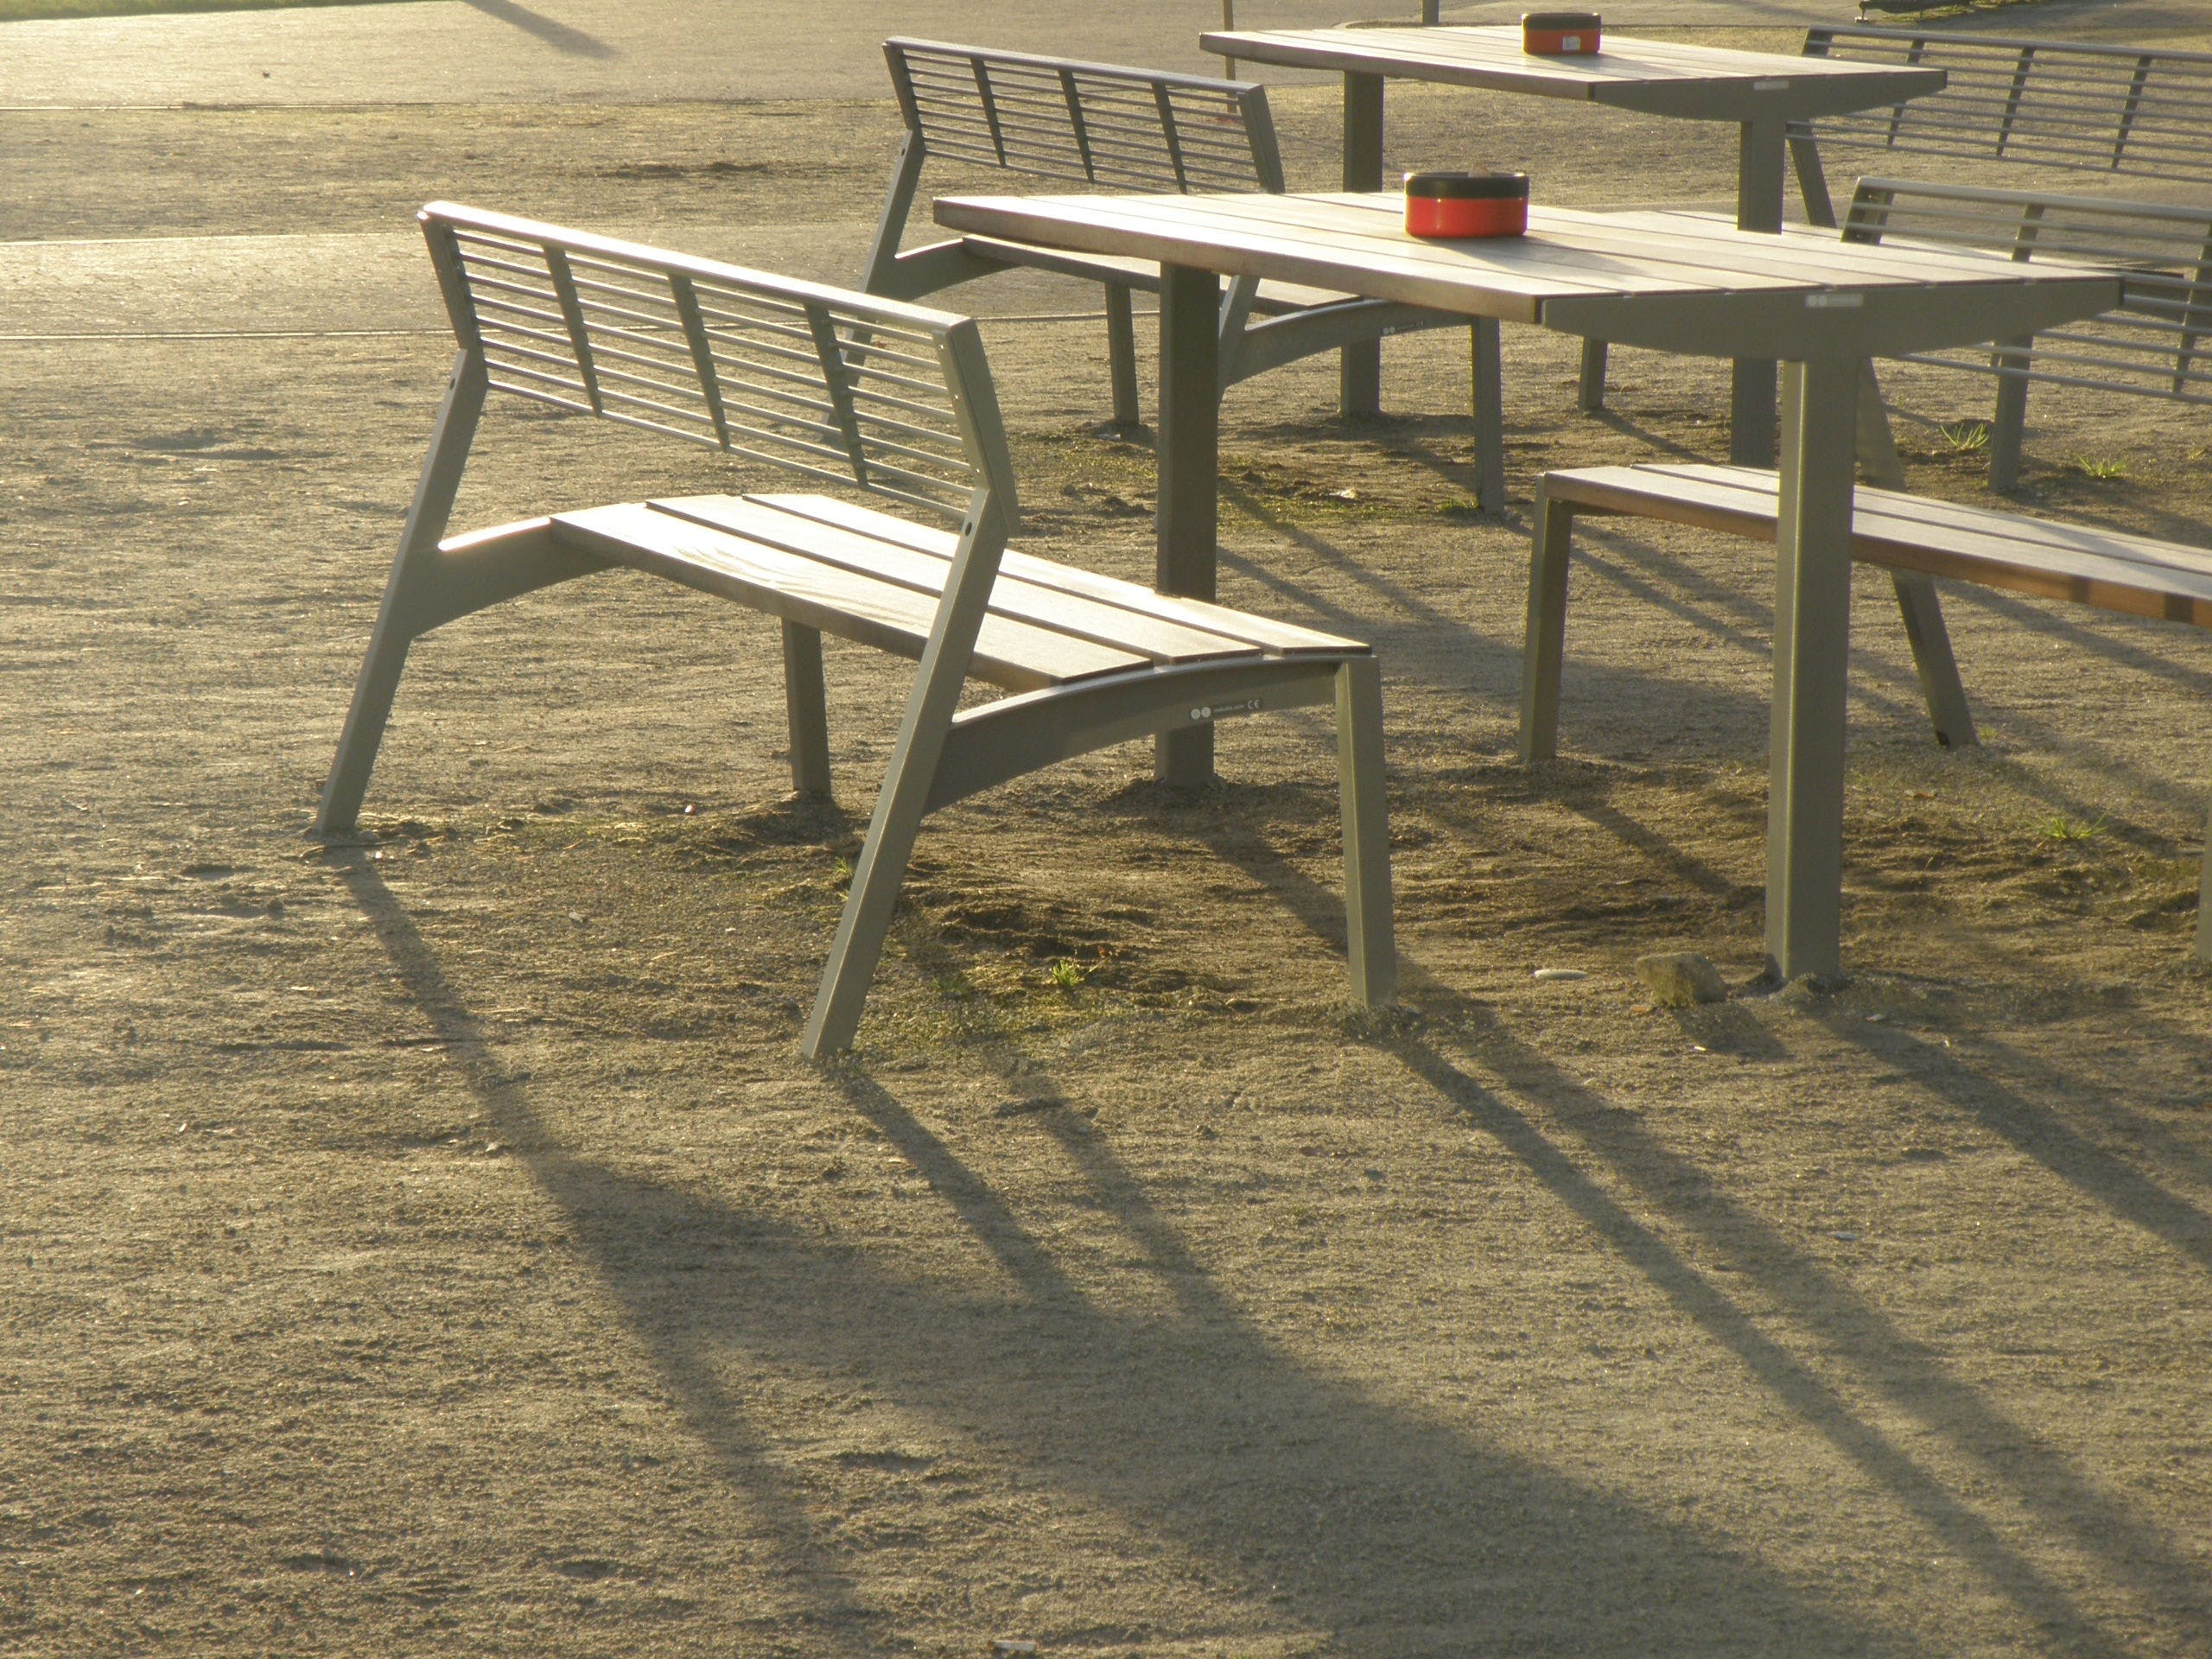 ashtray, bench, chairs